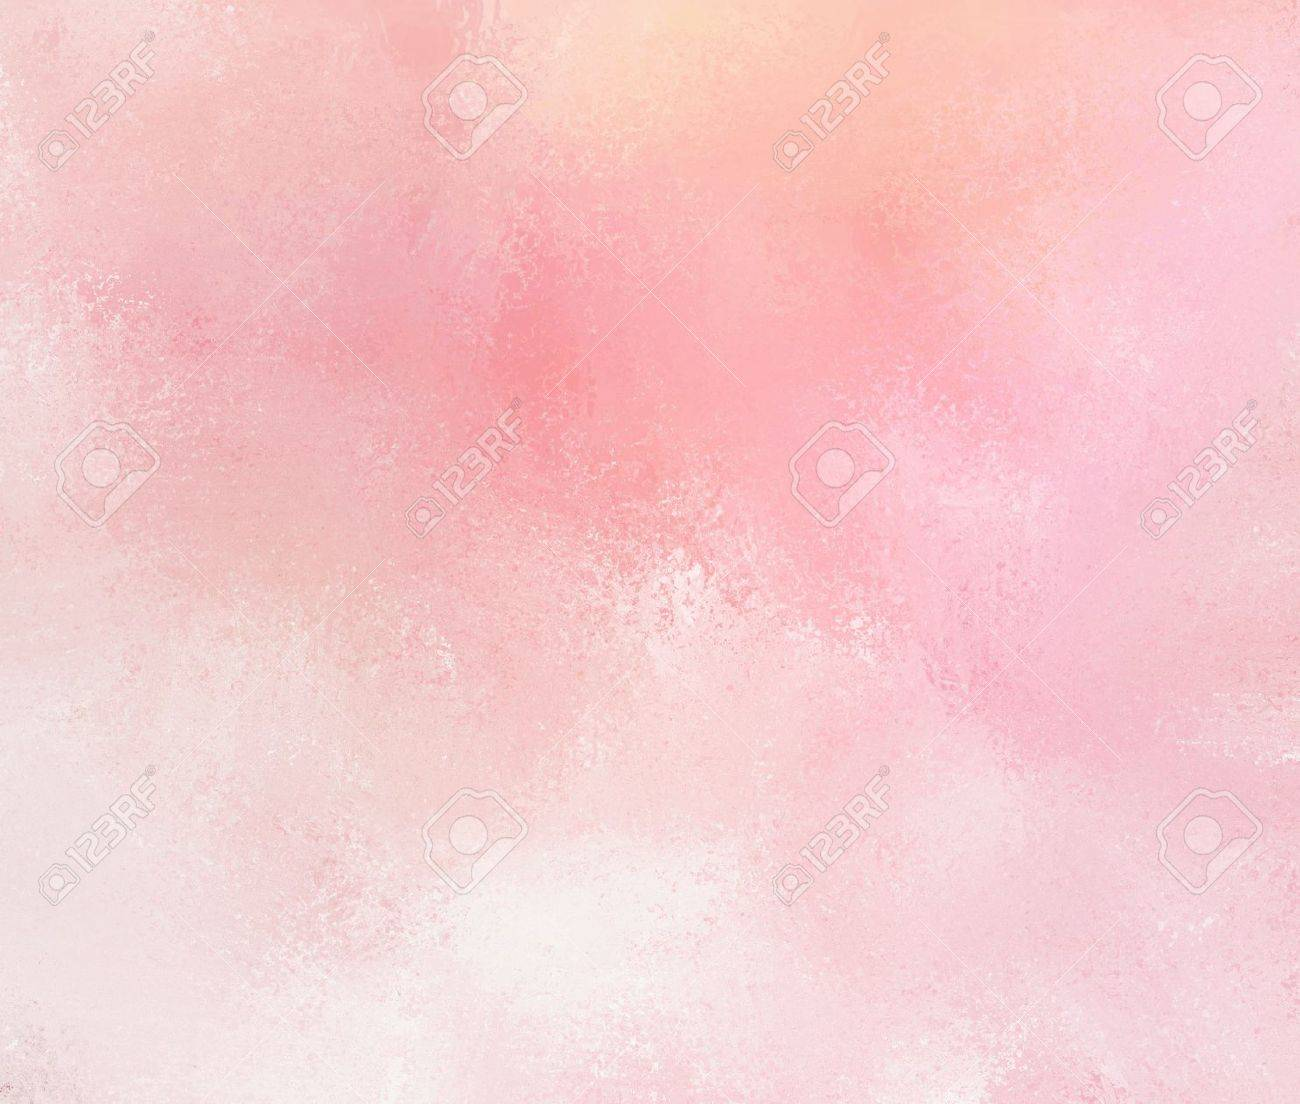 abstract pink background with faded white grunge brush strokes. Rough distressed texture on pale pink background with yellowed color tone. - 43272694